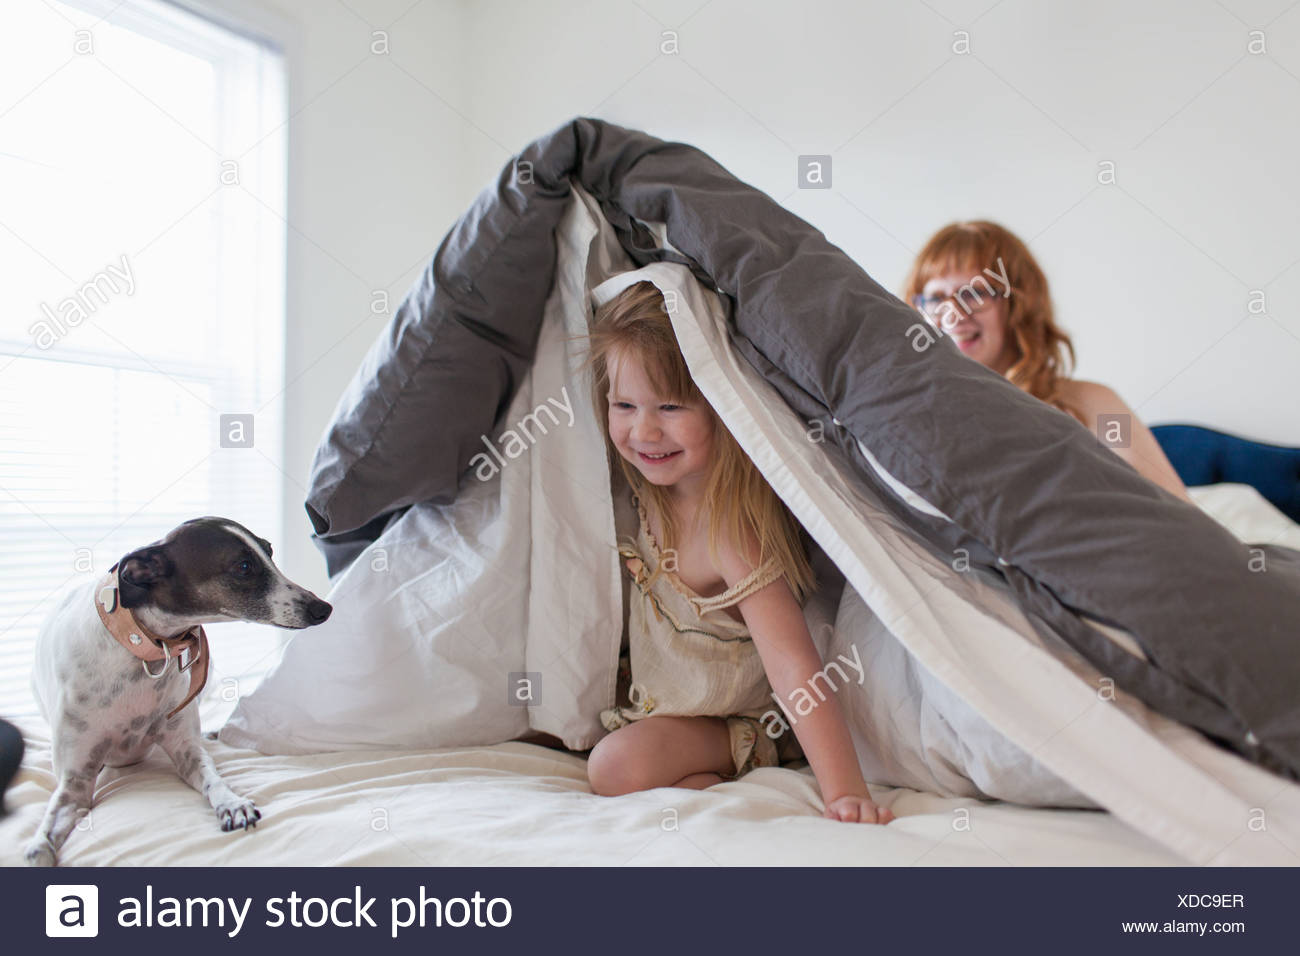 Girl hiding under duvet, mother and dog on bed - Stock Image